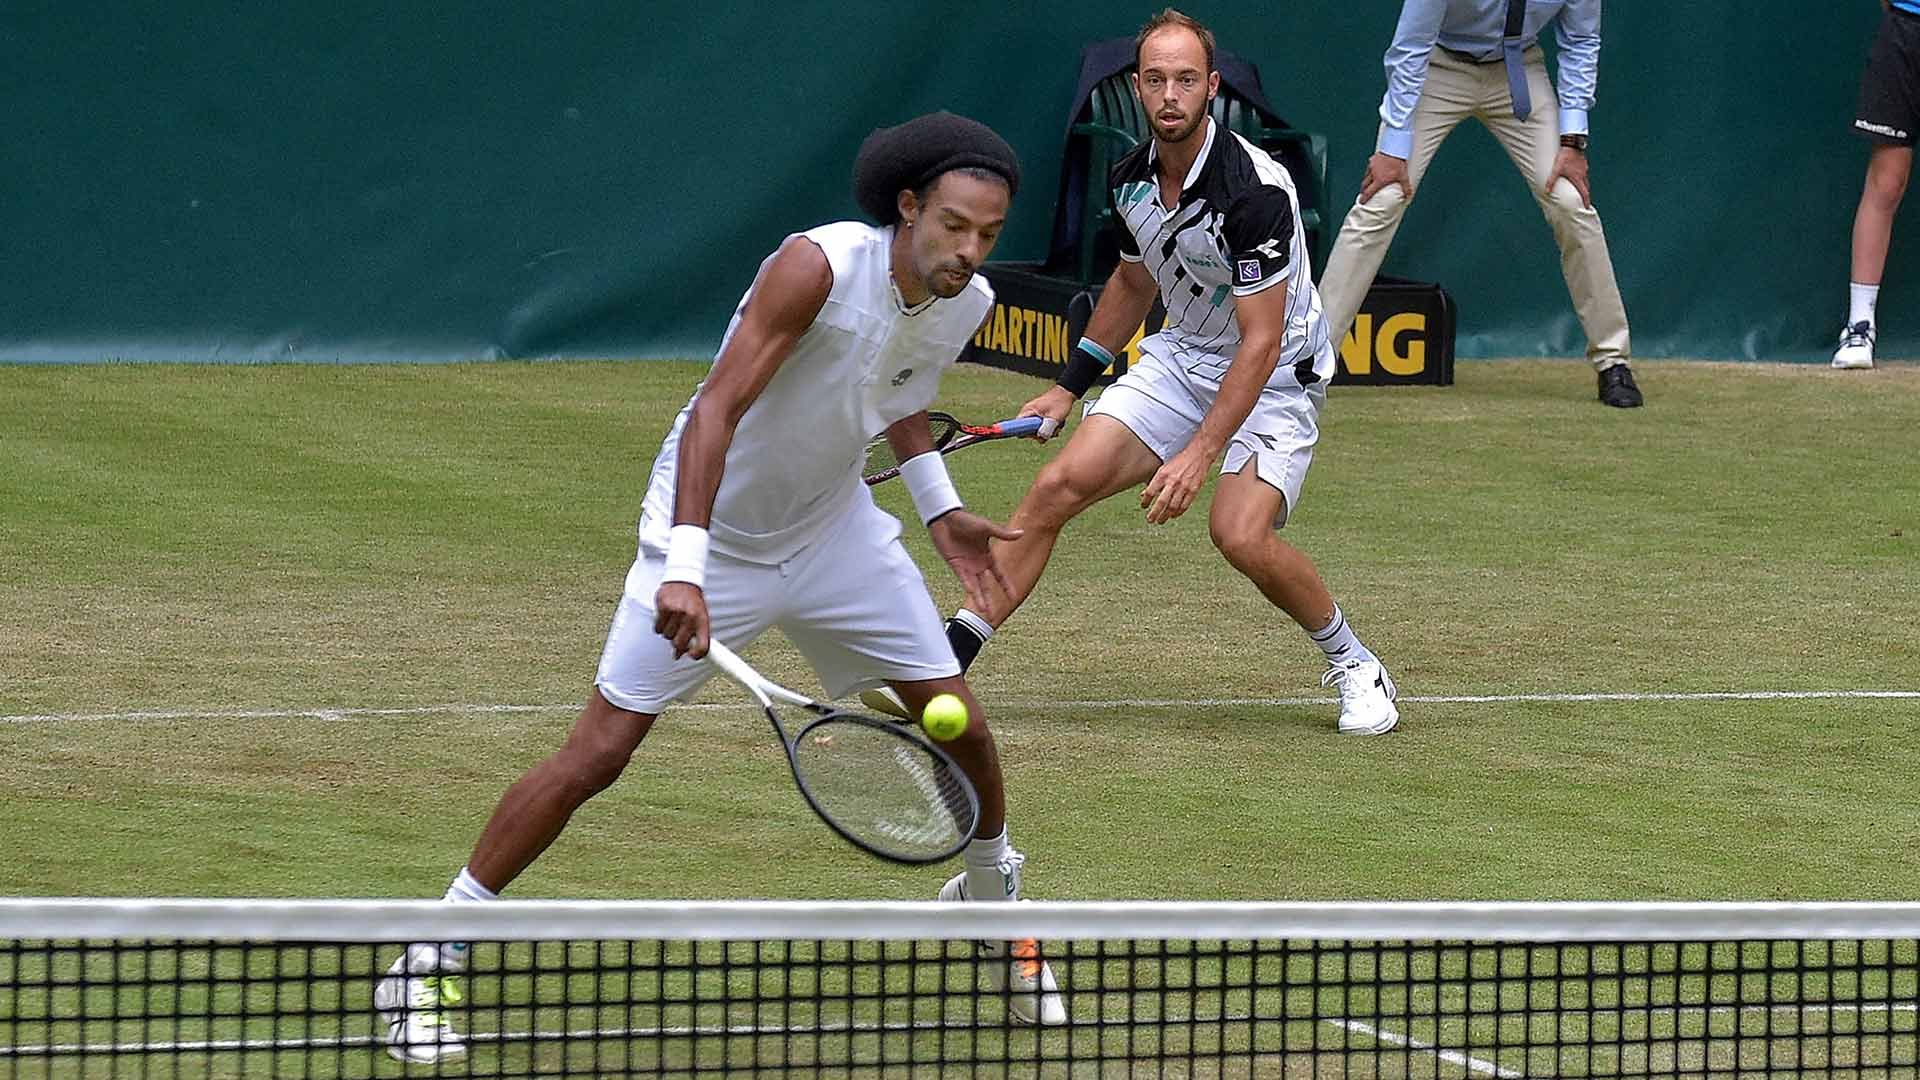 Dustin Brown/Tim Puetz advance on Tuesday at the grass-court ATP Tour event in Halle